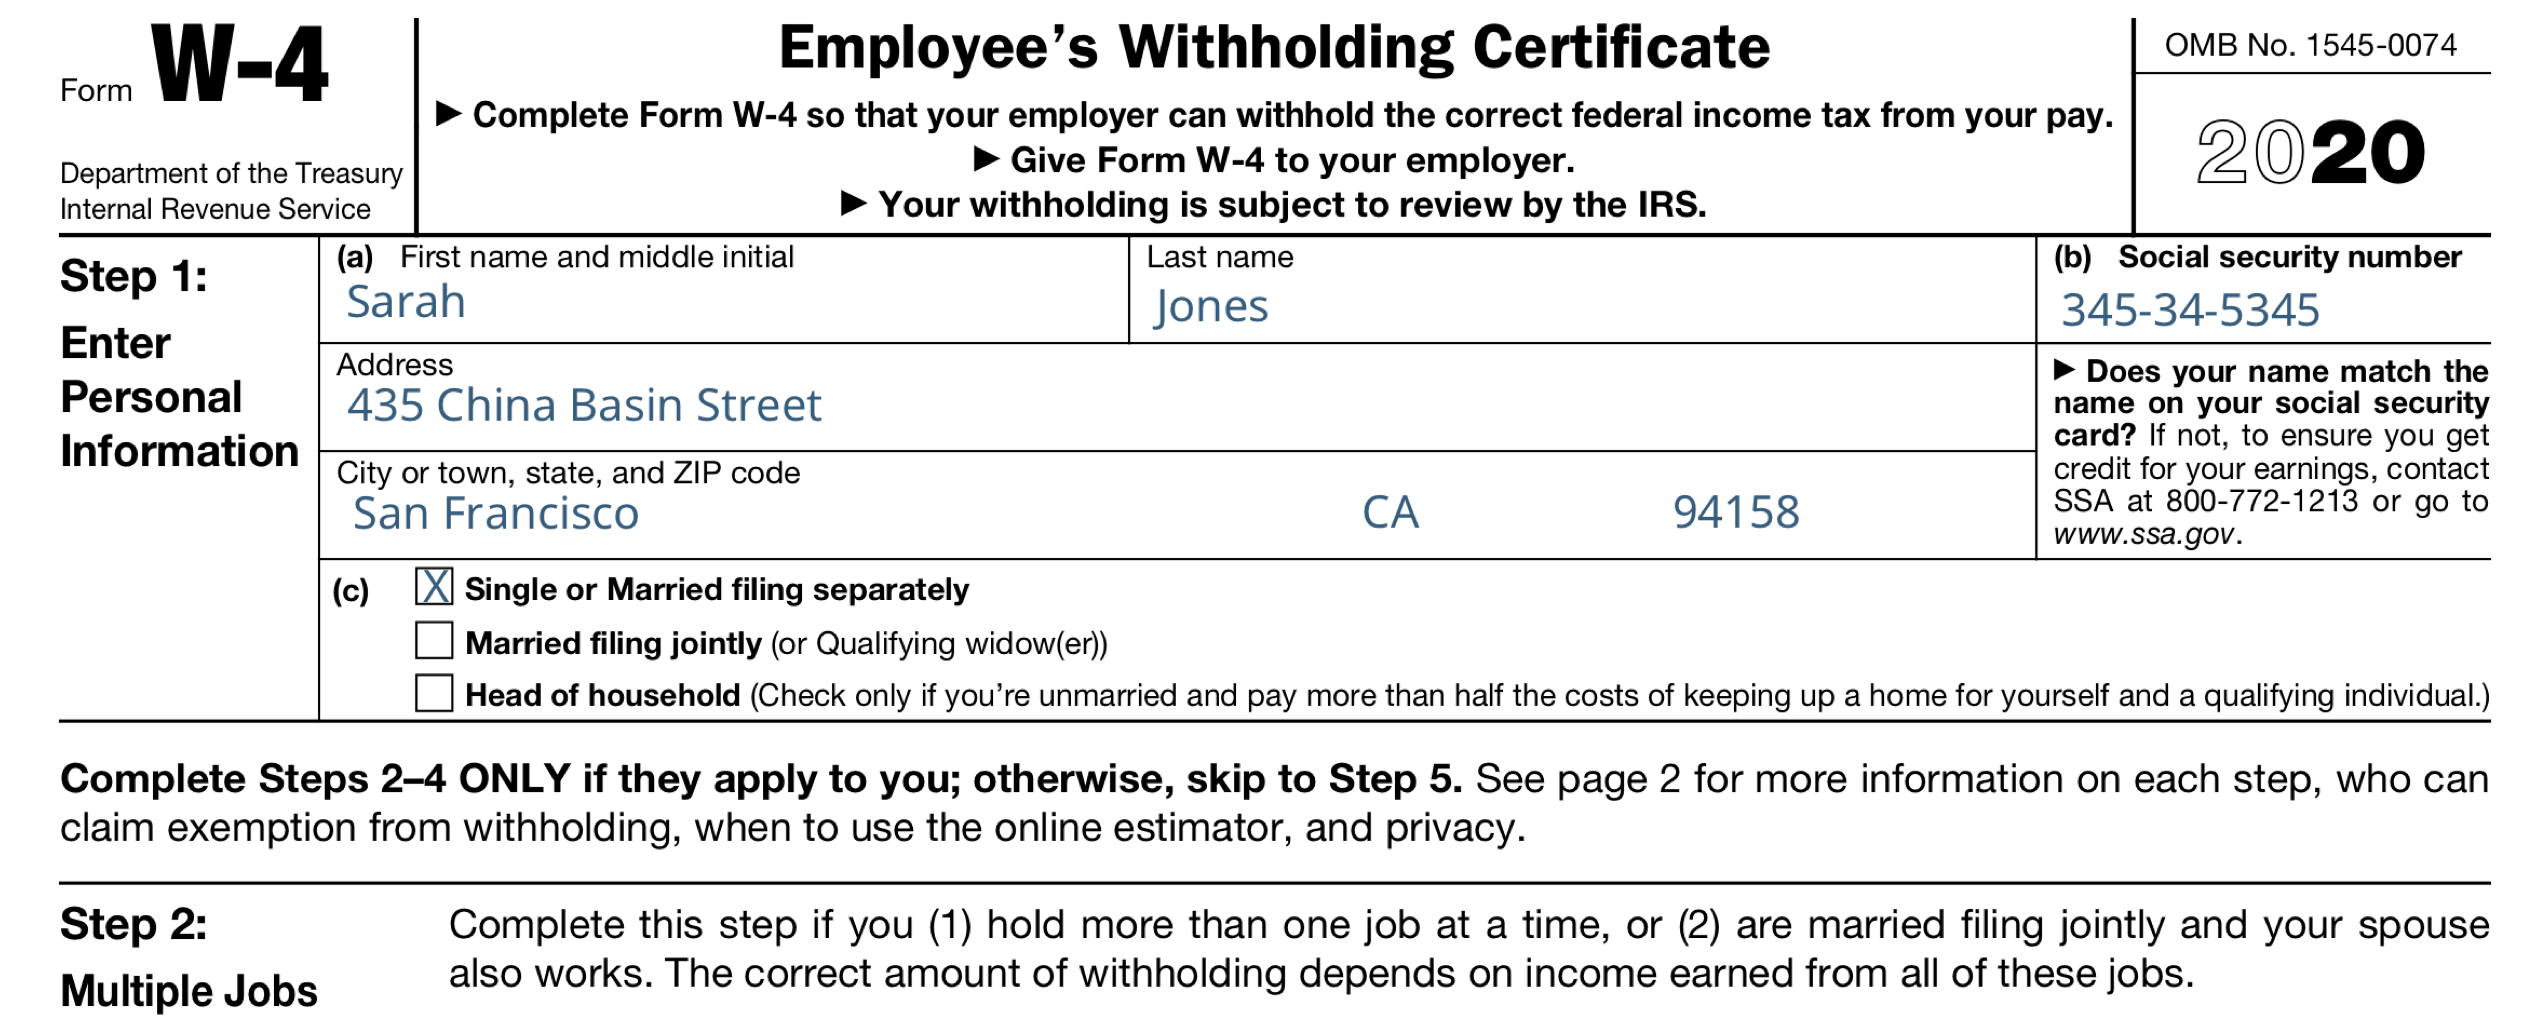 IRS W-4 Employee's Witholding Allowance Certificate Form